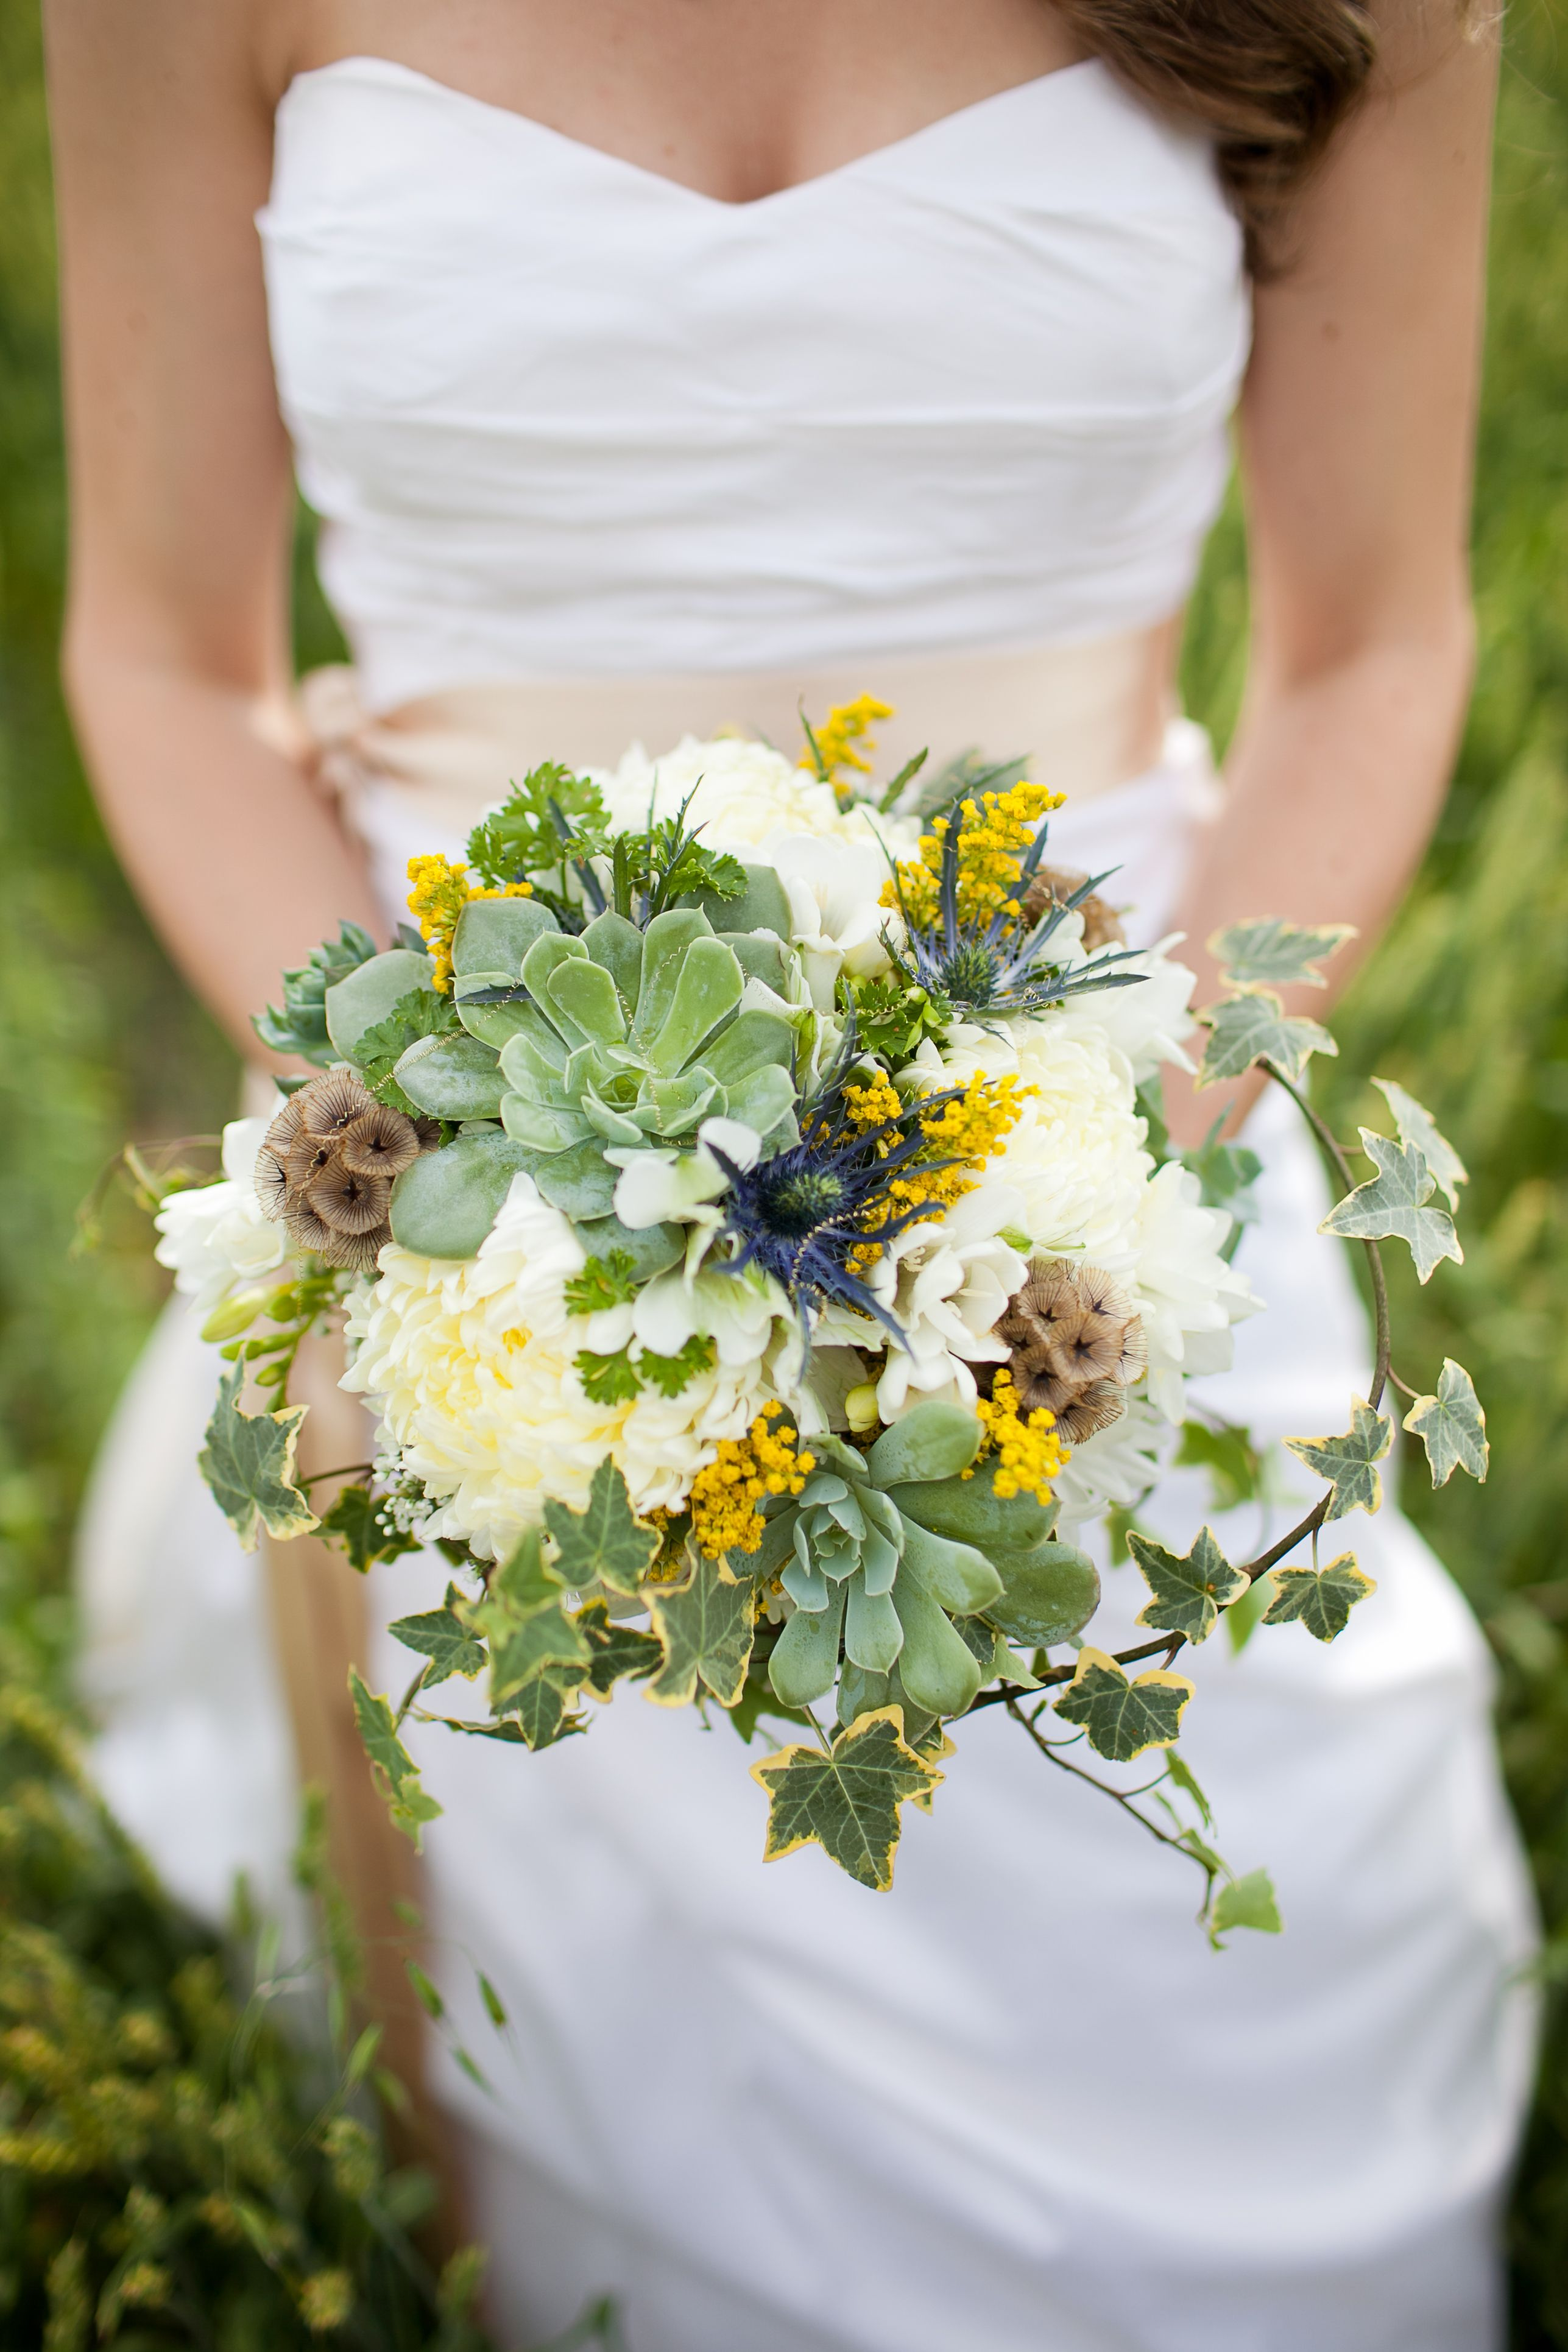 Wedding flowers bridal bouquet rustic wedding hens and chicks in wedding flowers bridal bouquet rustic wedding hens and chicks in bouquets izmirmasajfo Image collections